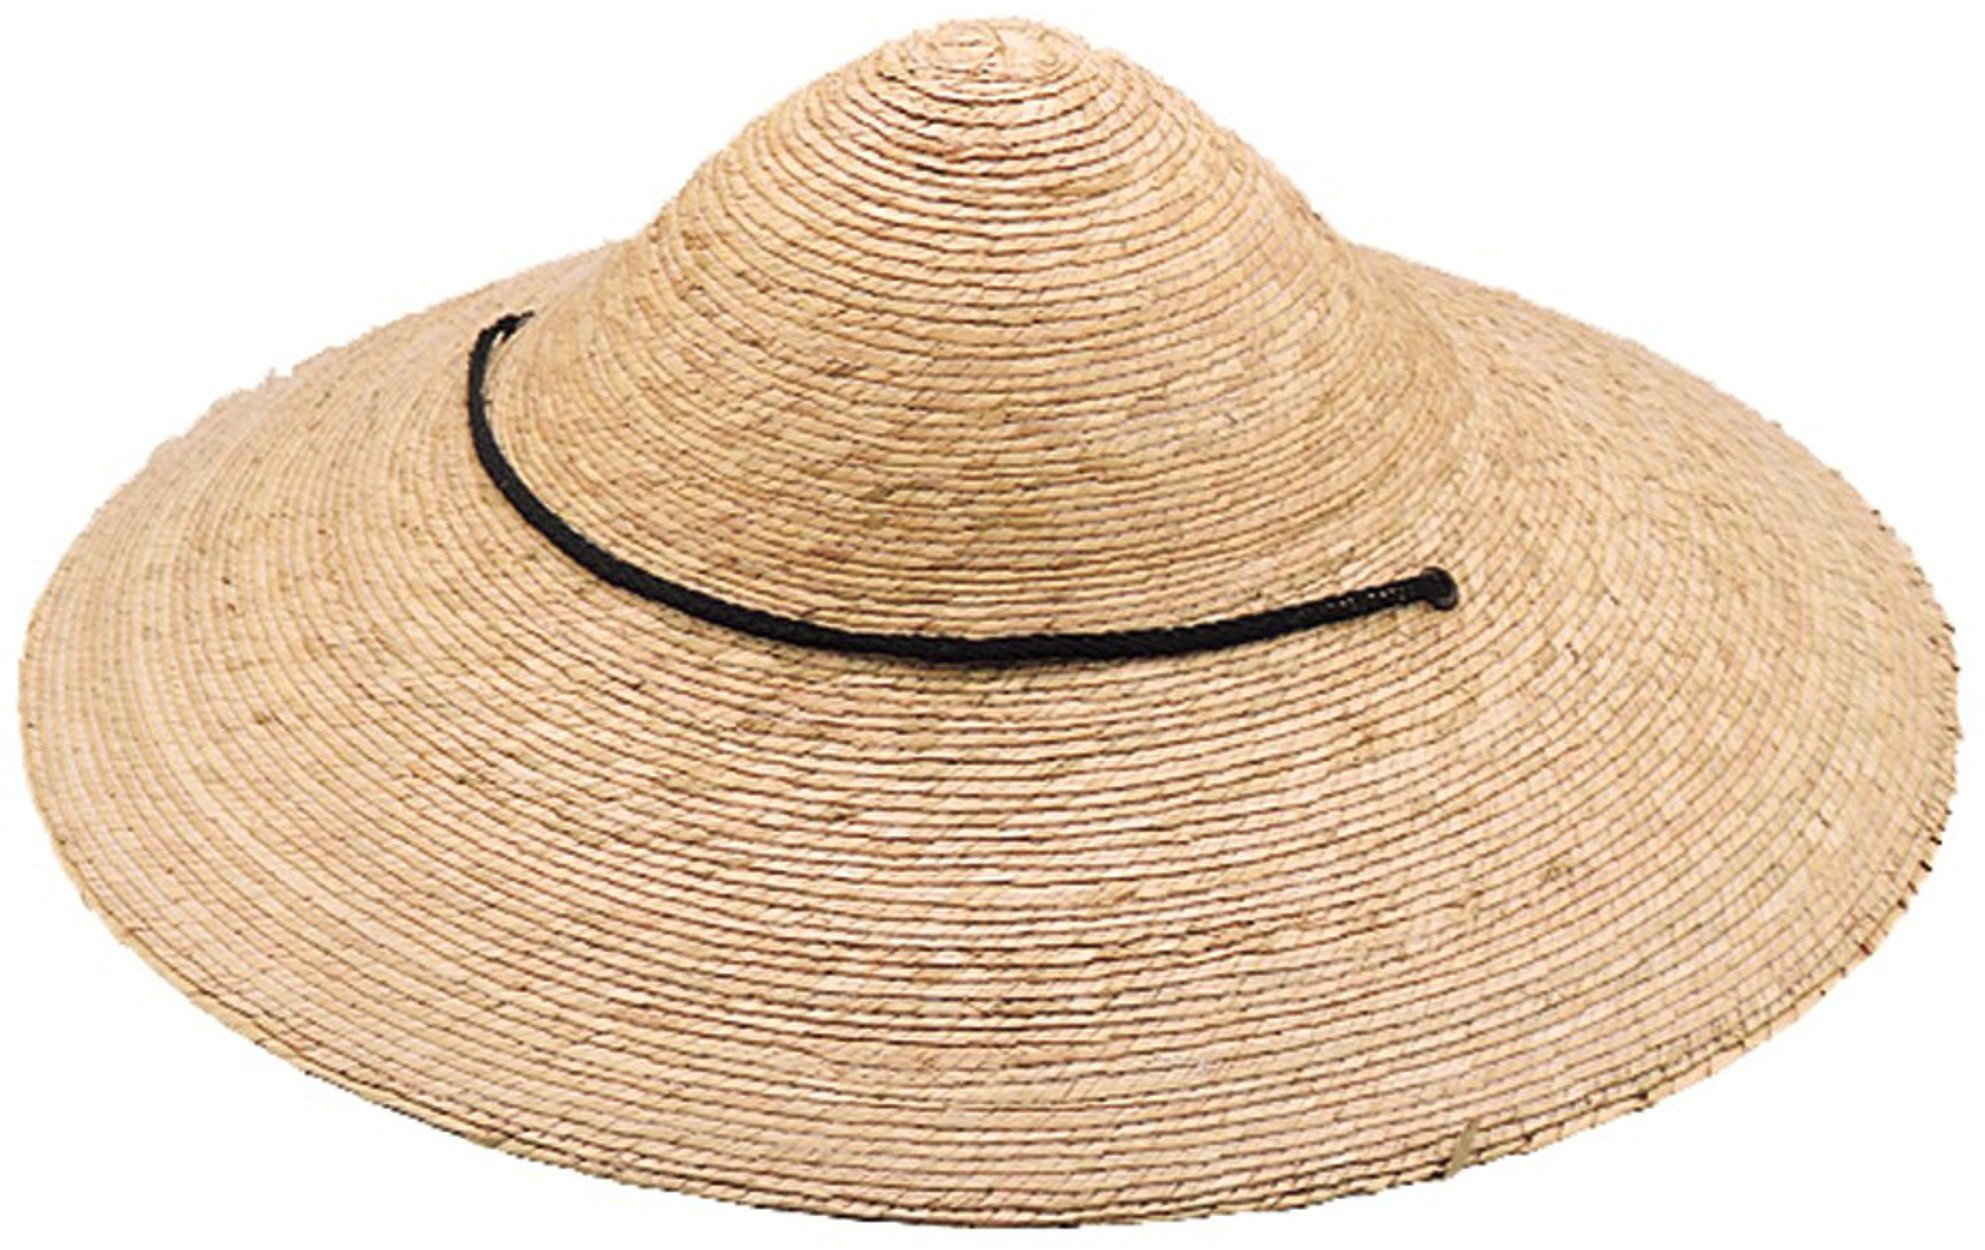 Jacobson Hat Company Men's Straw Braid Coolie, Natural, Adult